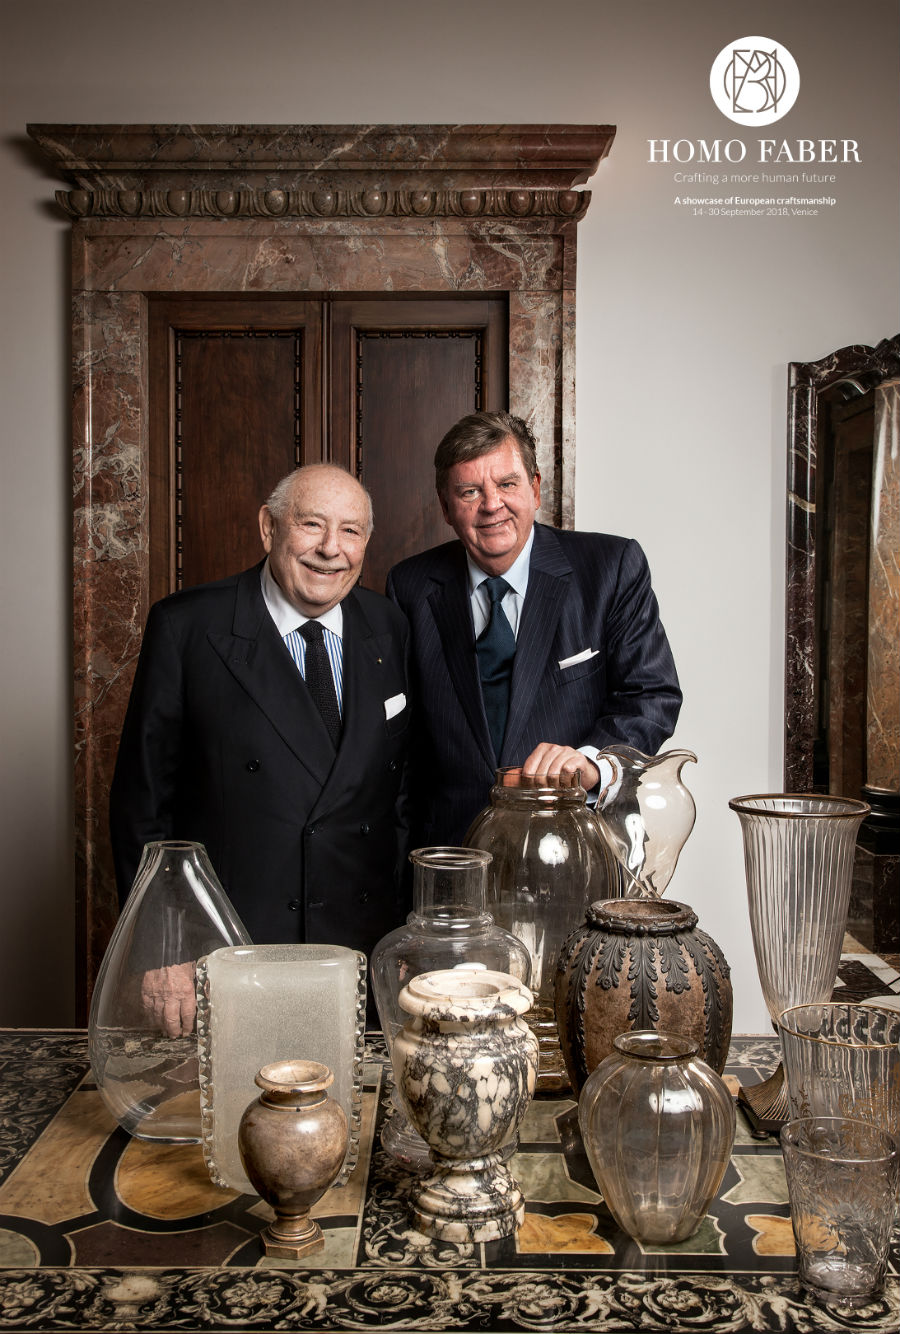 Michelangelo Foundation – Homo Faber Franco Cologni (sinistra) e Johann Rupert (destra), co-fondatori della Michelangelo Foundation for Creativity and Craftsmanship. © Laila Pozzo